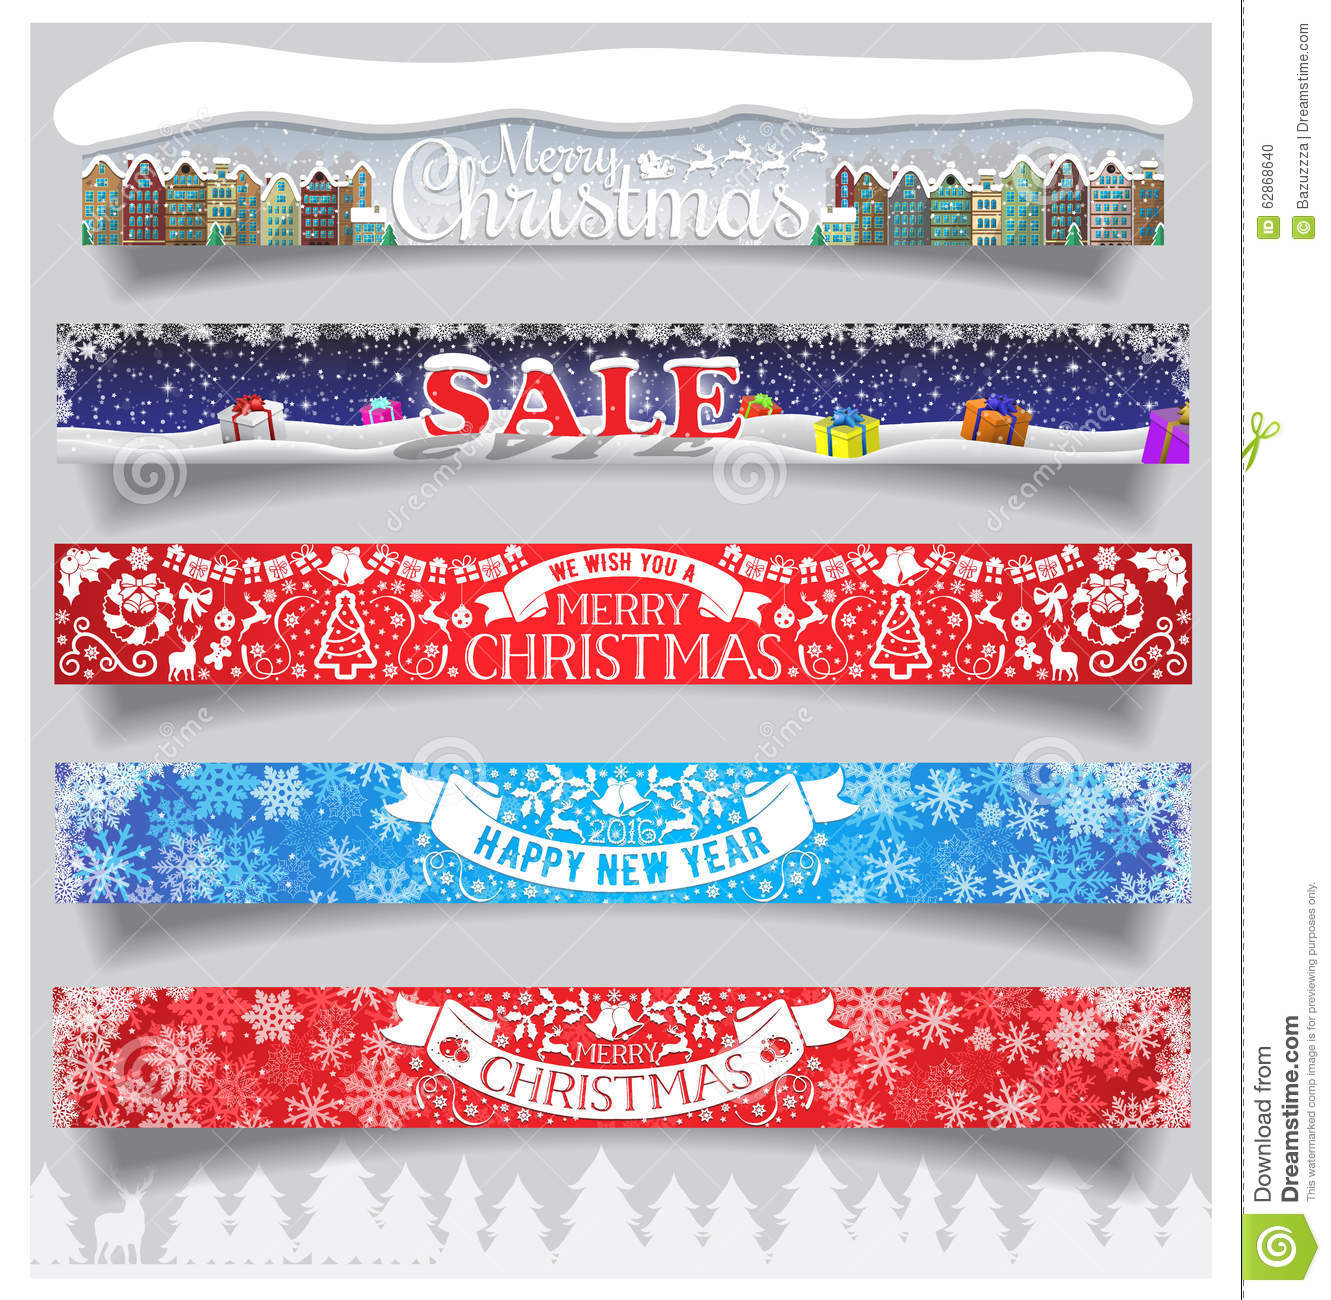 Winter Sale Banners Diy Wall Banners